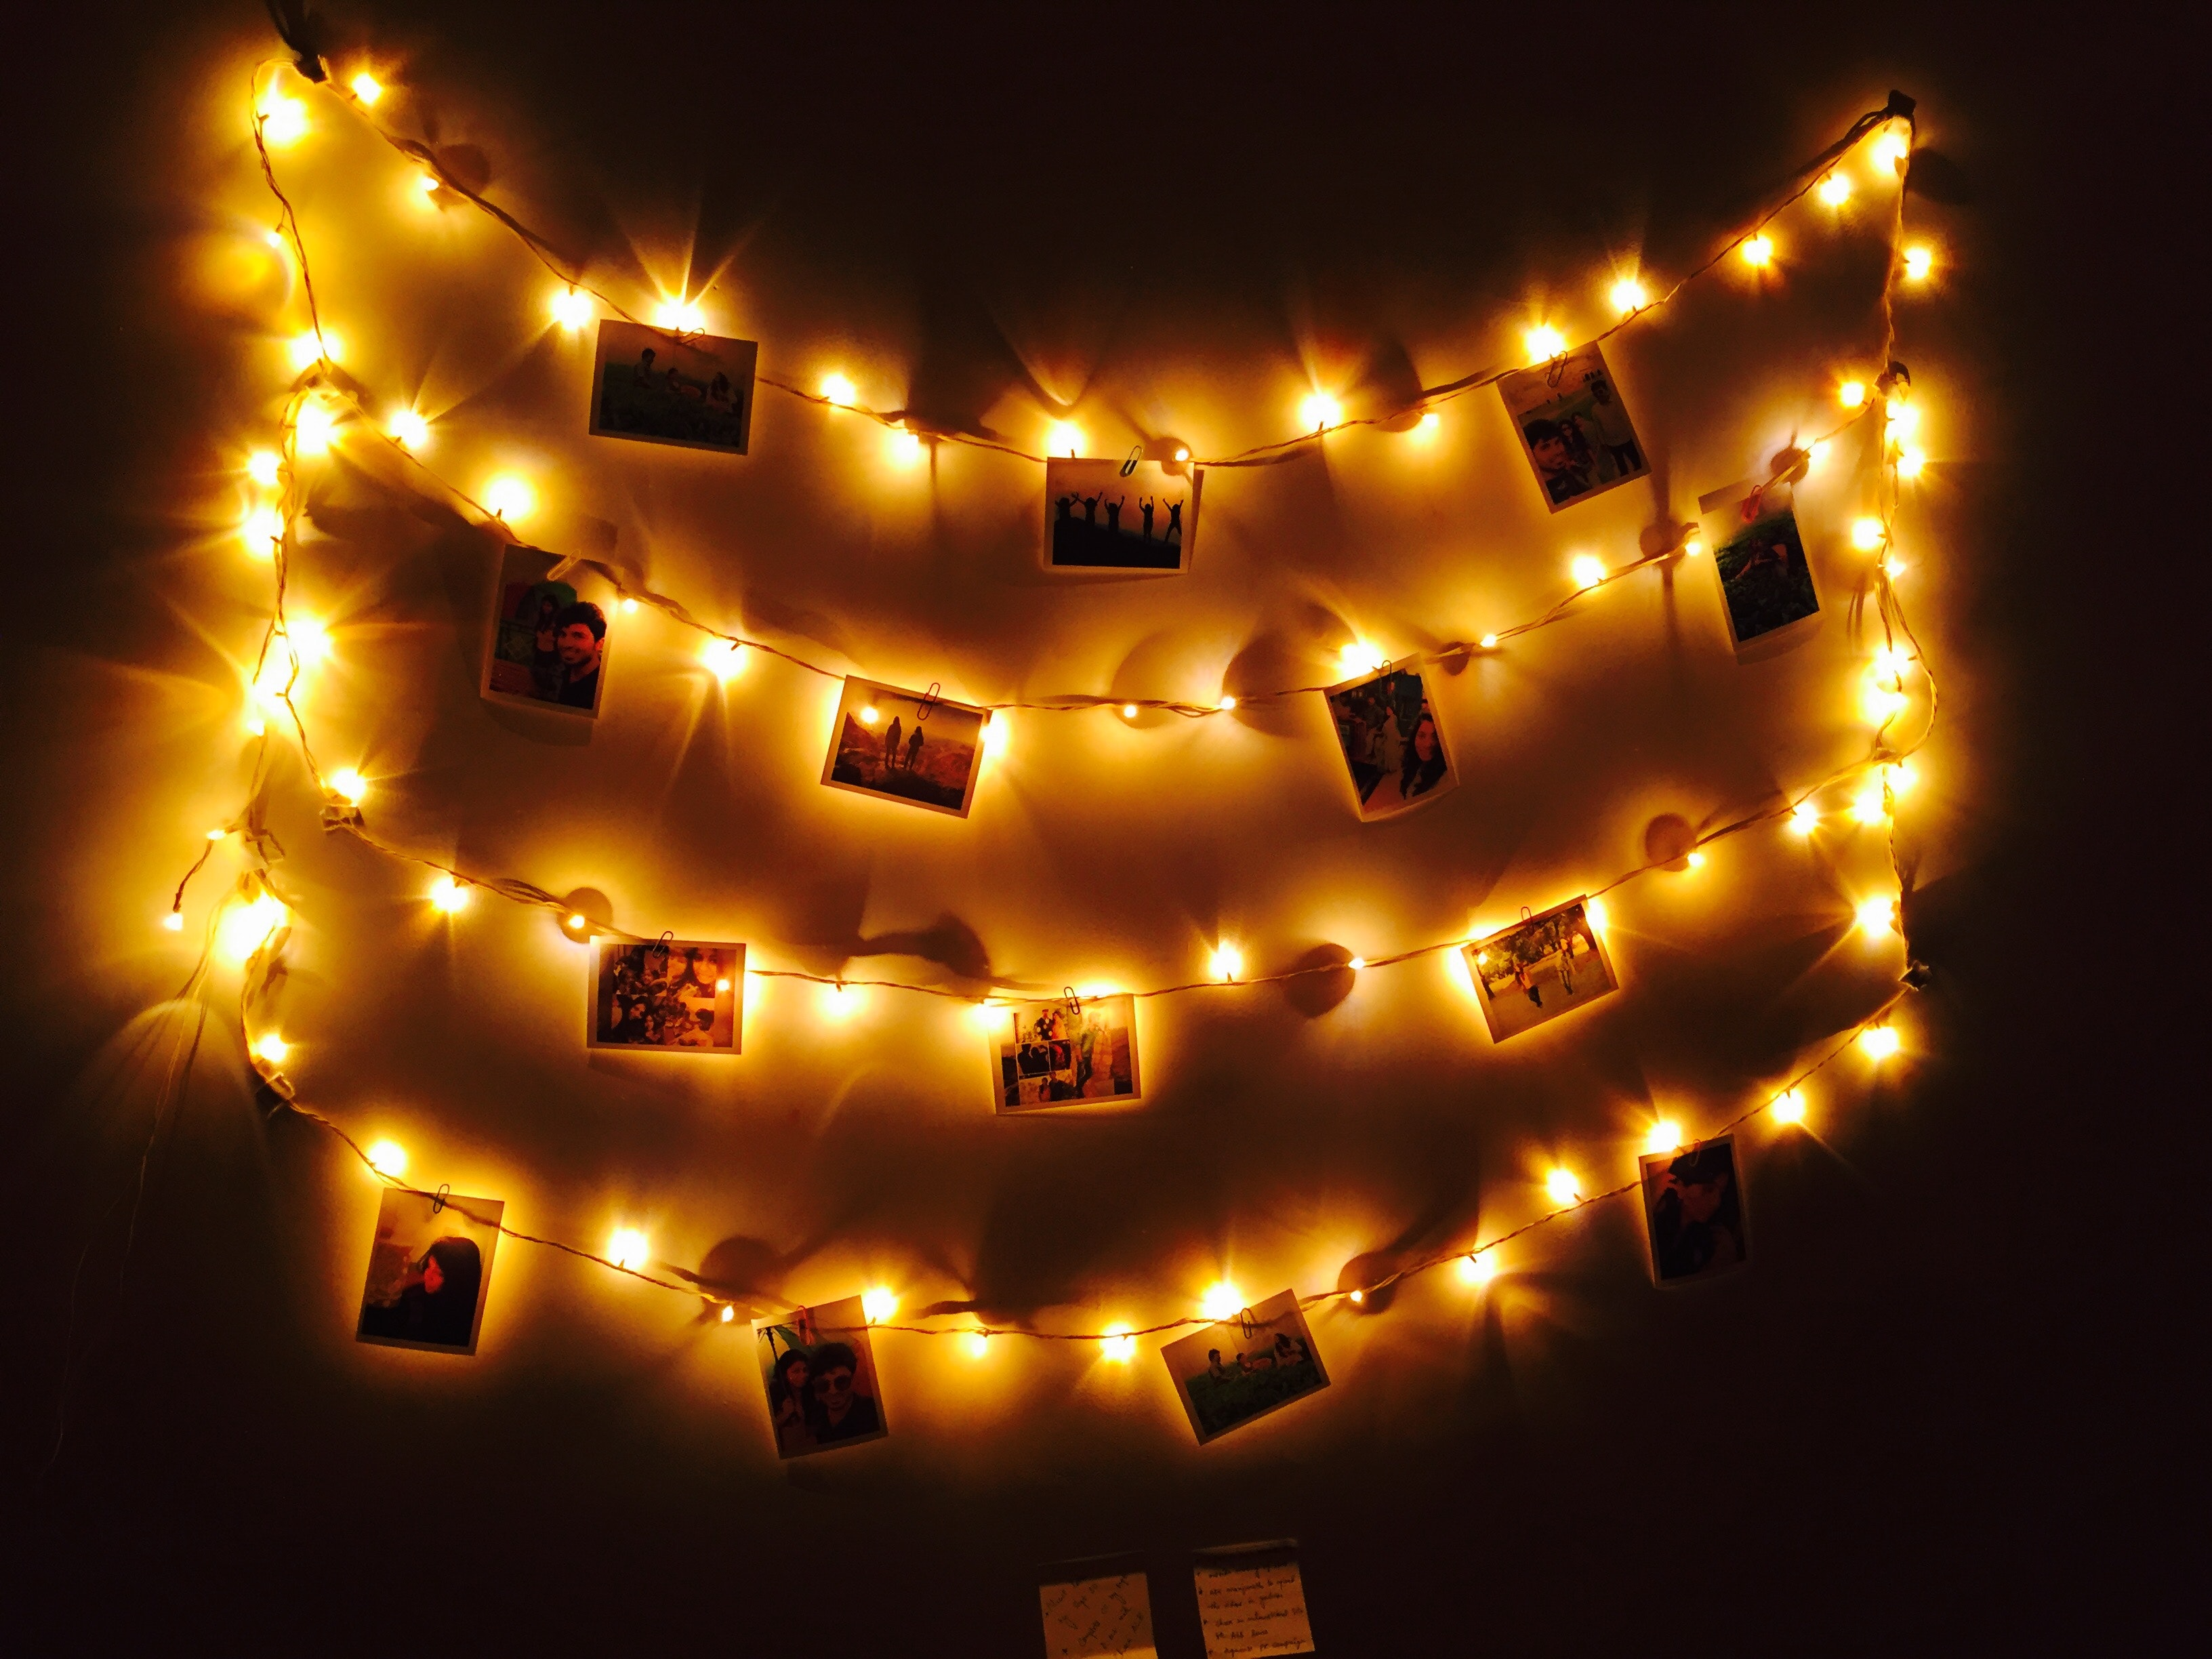 Lit hanging photo frames